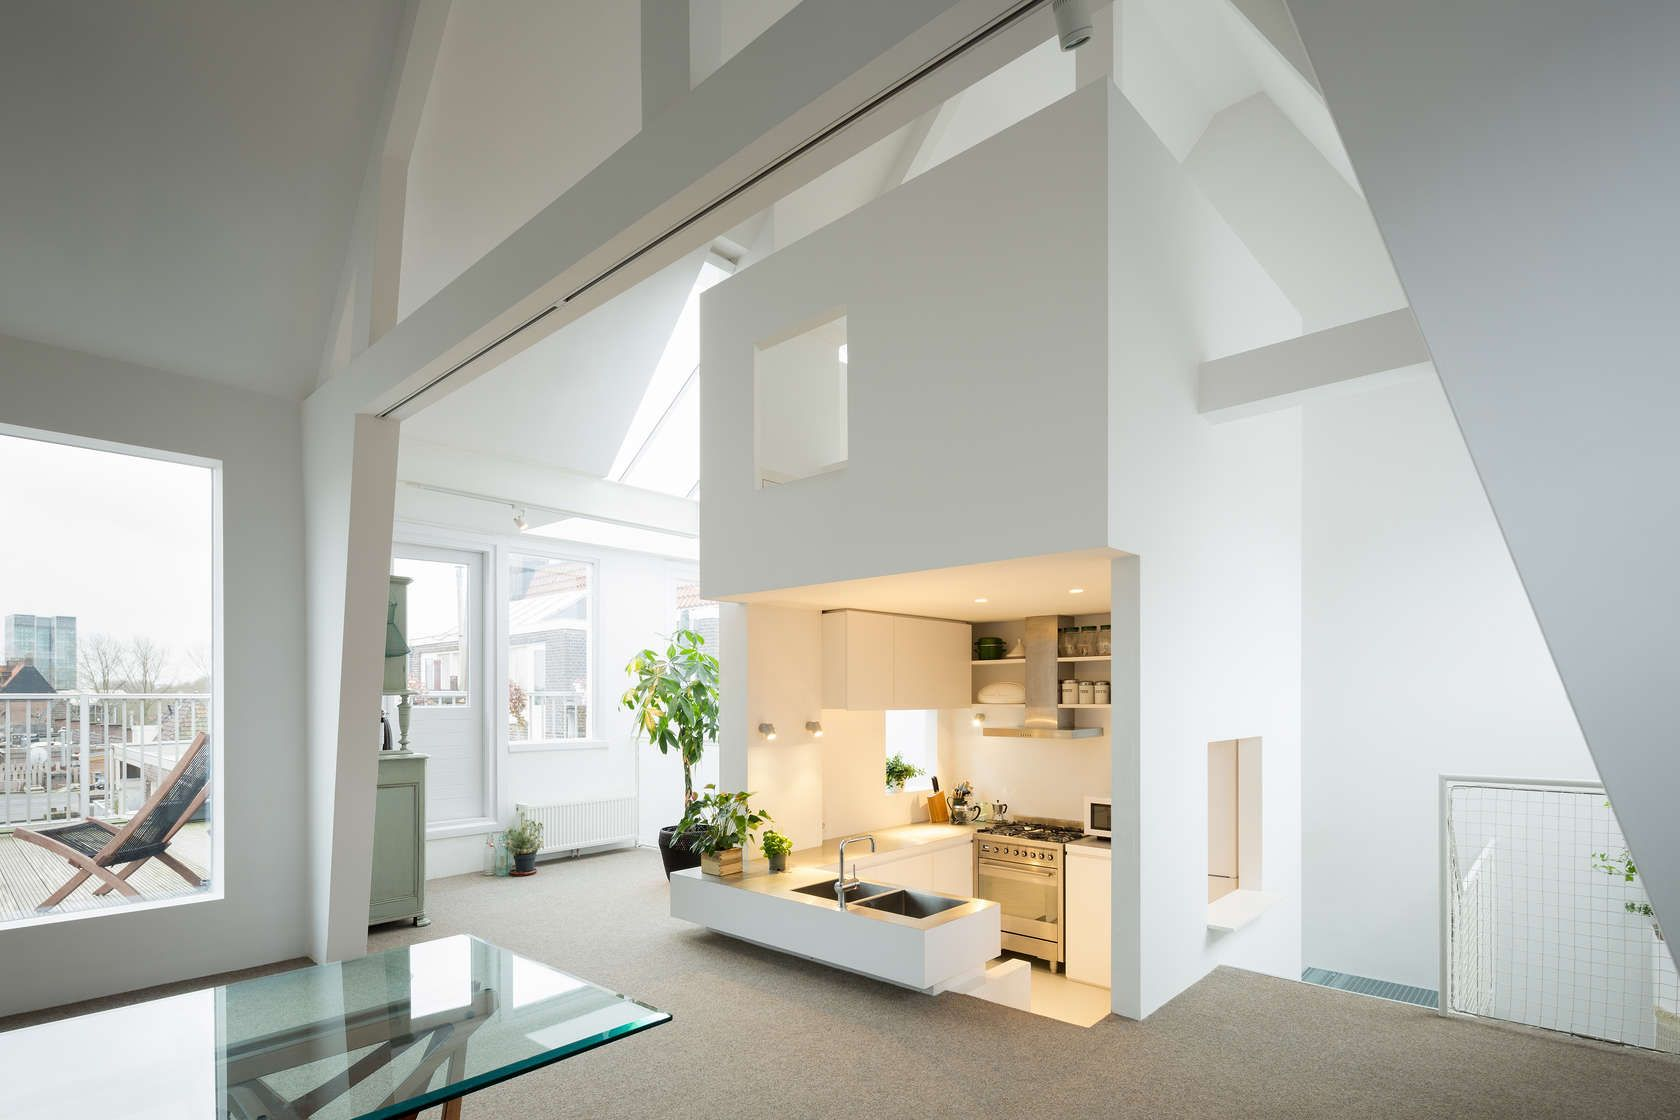 Since the Modernist period, architecture has had the combination of service and living spaces as one of its core considerations. Functionalist architects, fo...